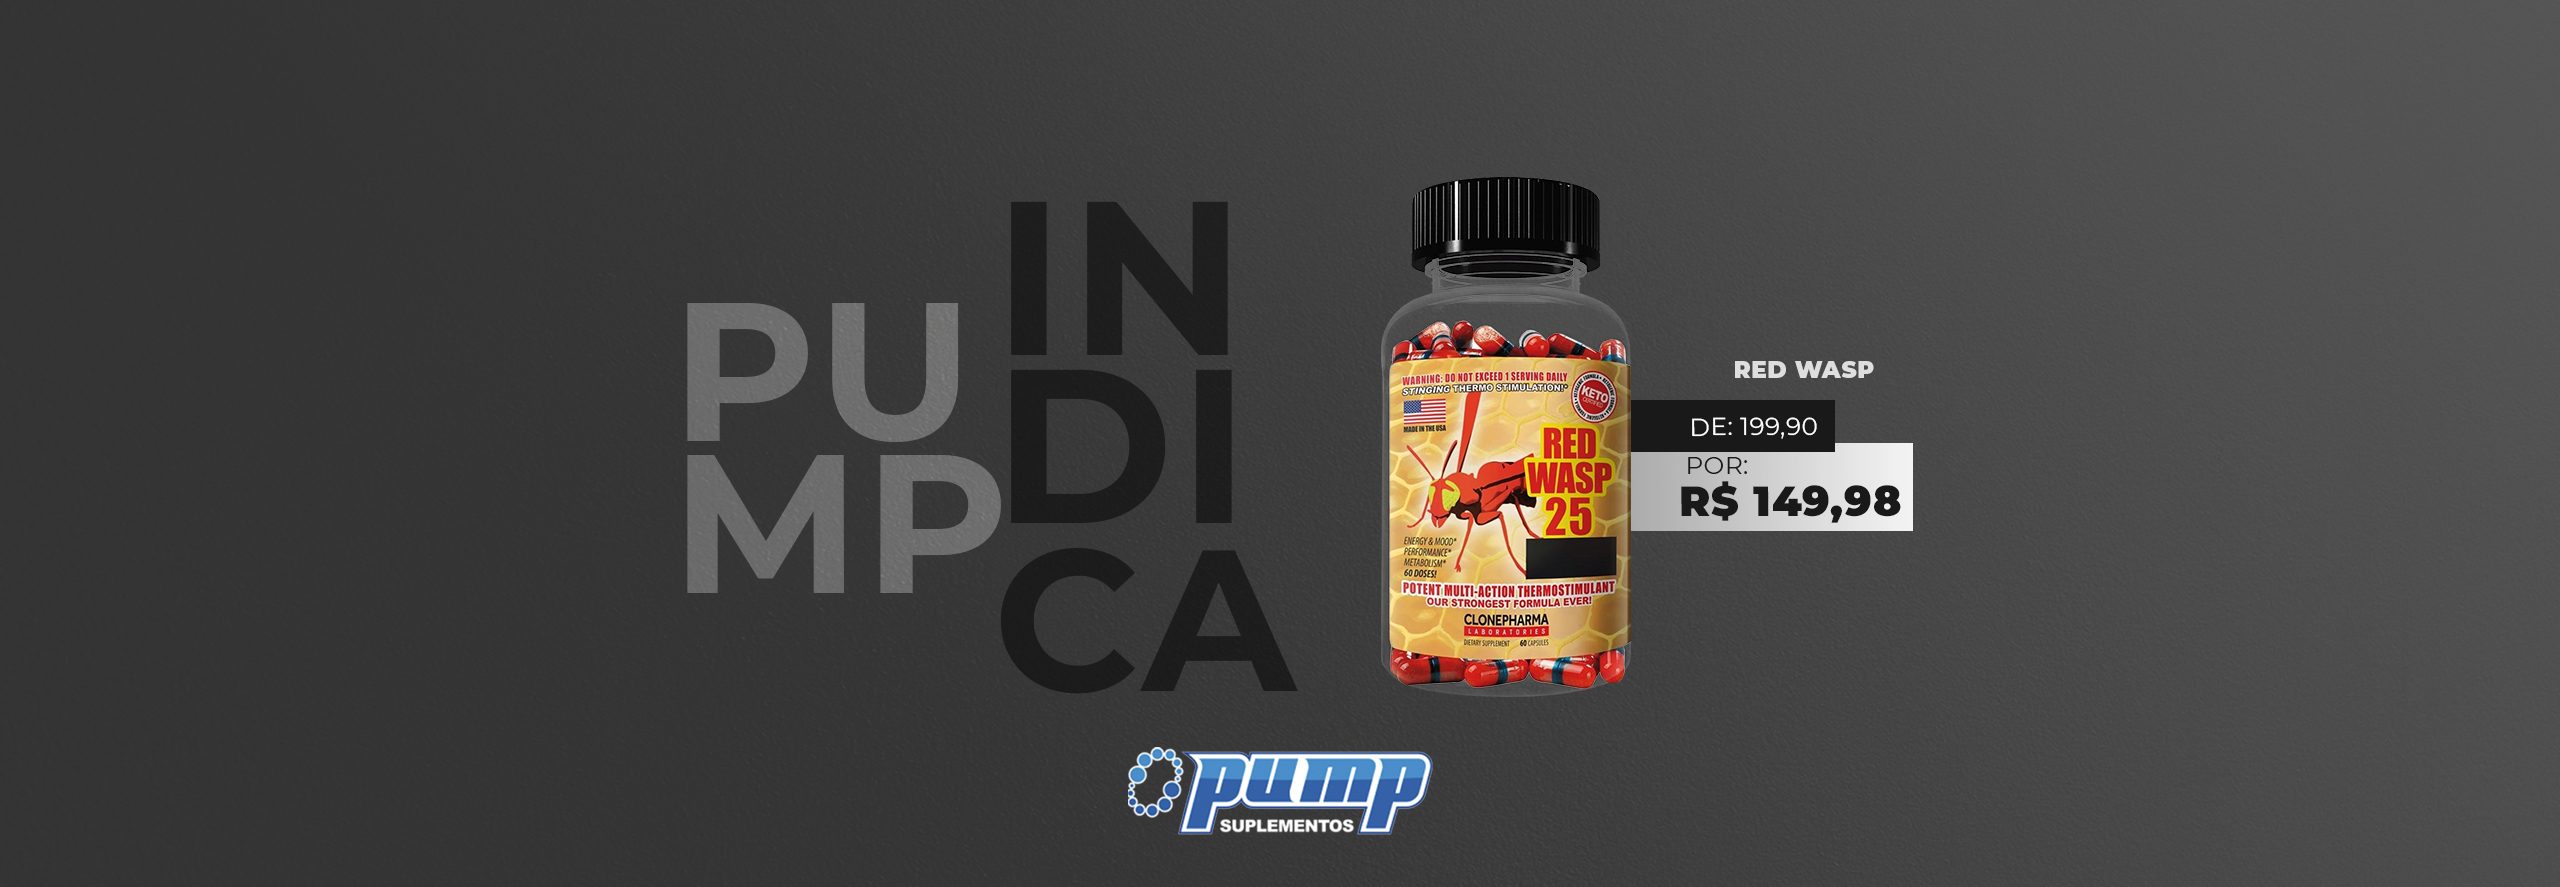 #Pump Indica (Red Wasp)